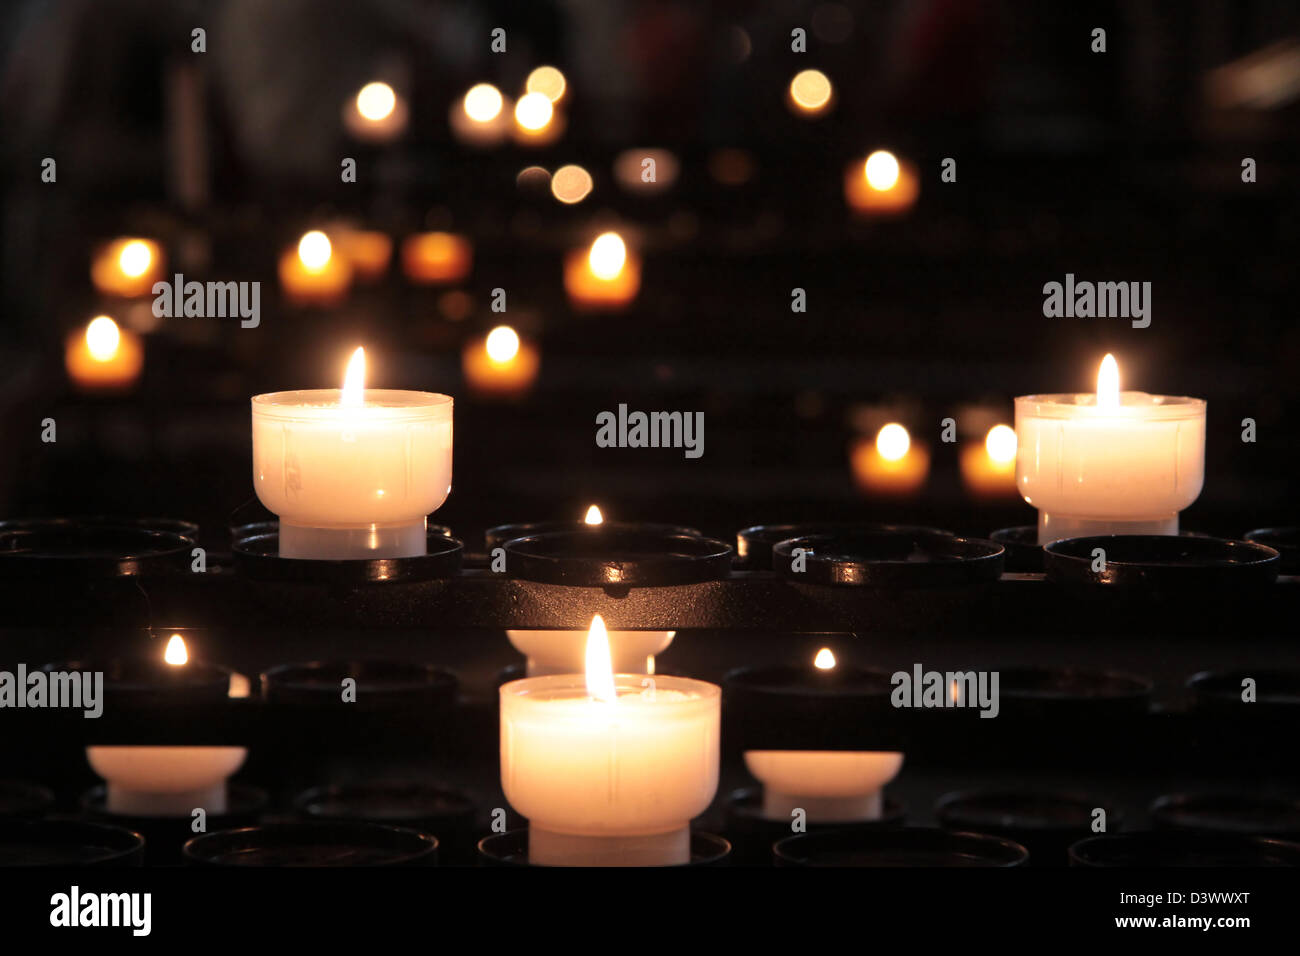 Blazing candle-flames in the Strasbourg cathedral Alsace, France - Stock Image